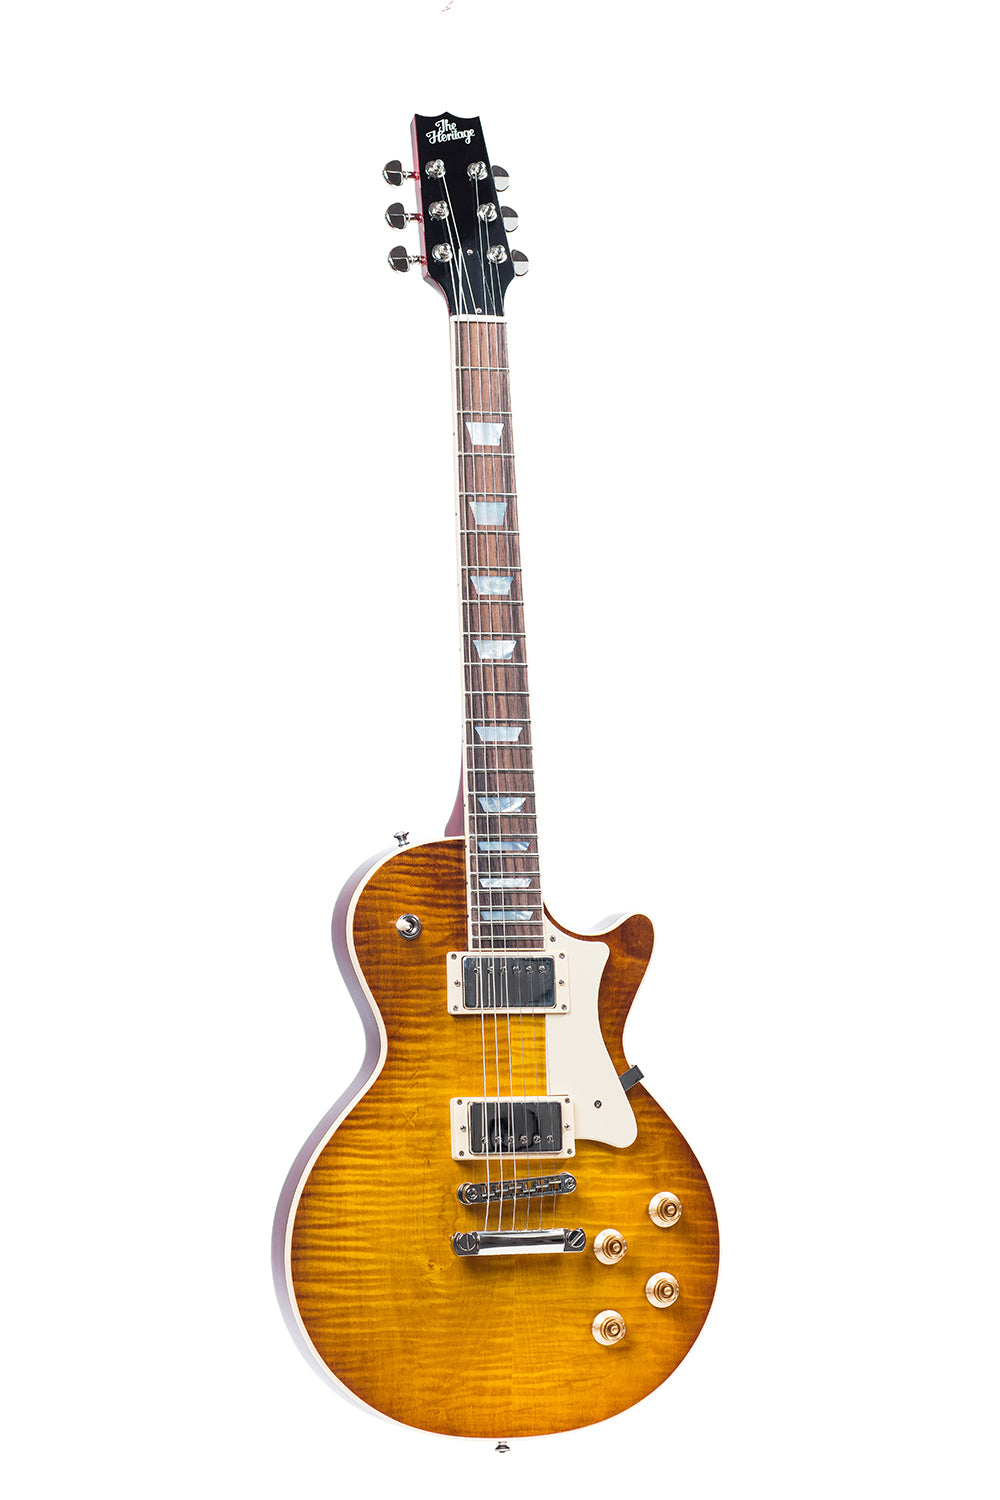 Heritage H150-DLB Solid Body Guitar - Dirty Lemon Burst